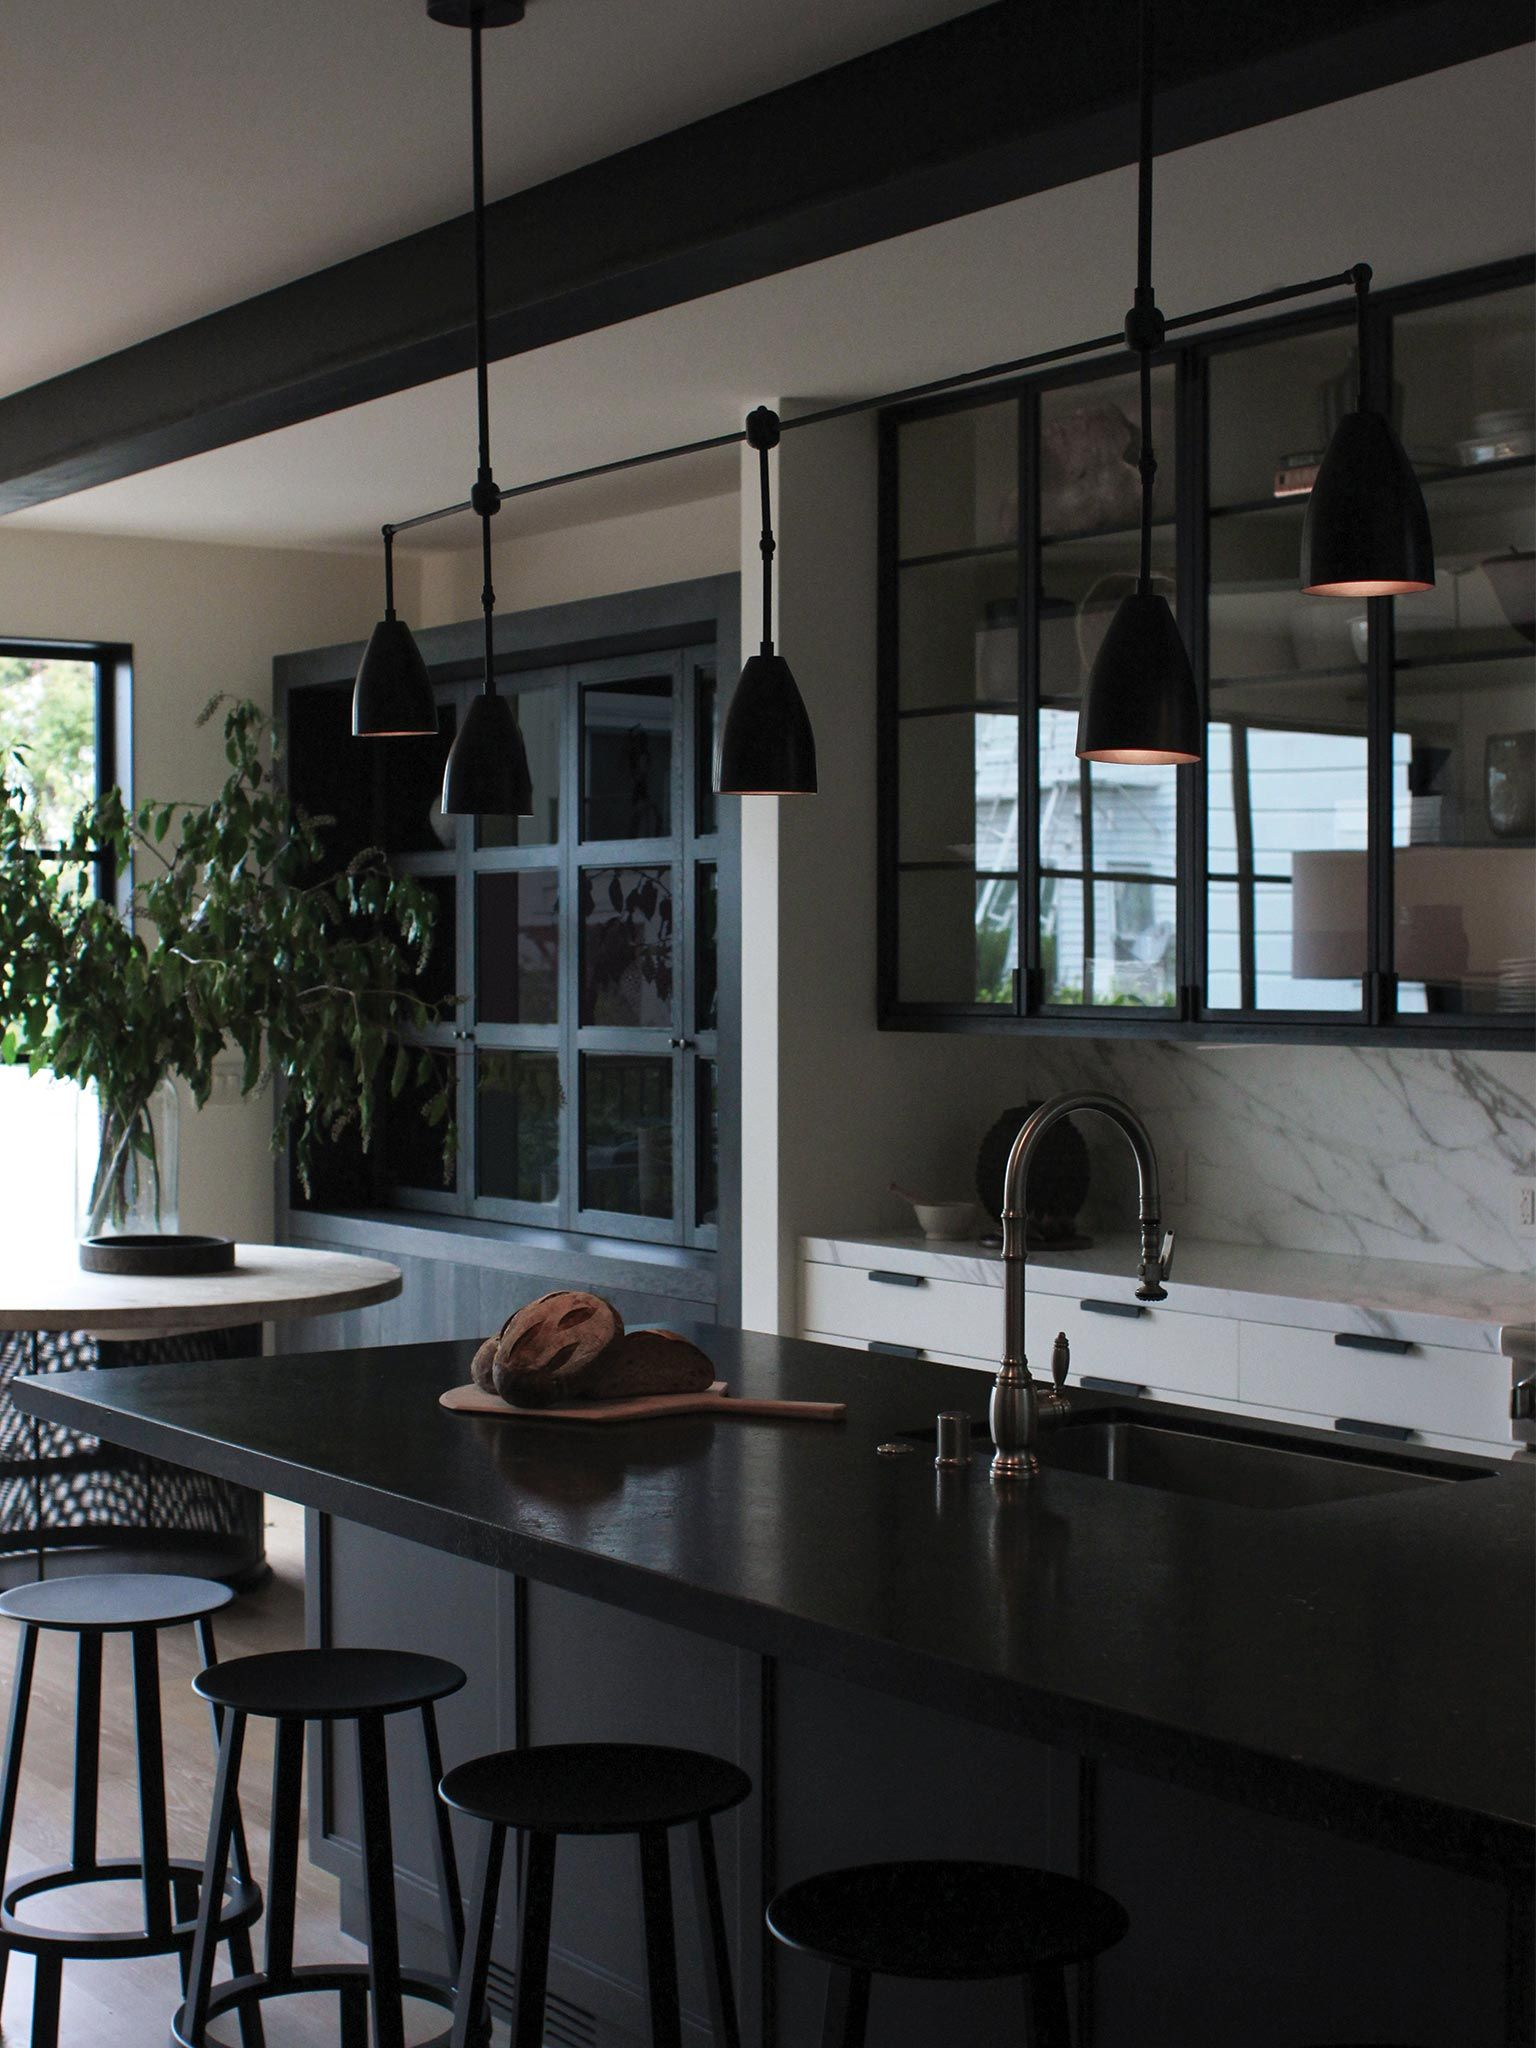 Black Metal And Glass Upper Cabinets Paired With White Base Drawers File Cabinet Style Pulls Marb Interior Design Kitchen Timeless Kitchen Kitchen Interior